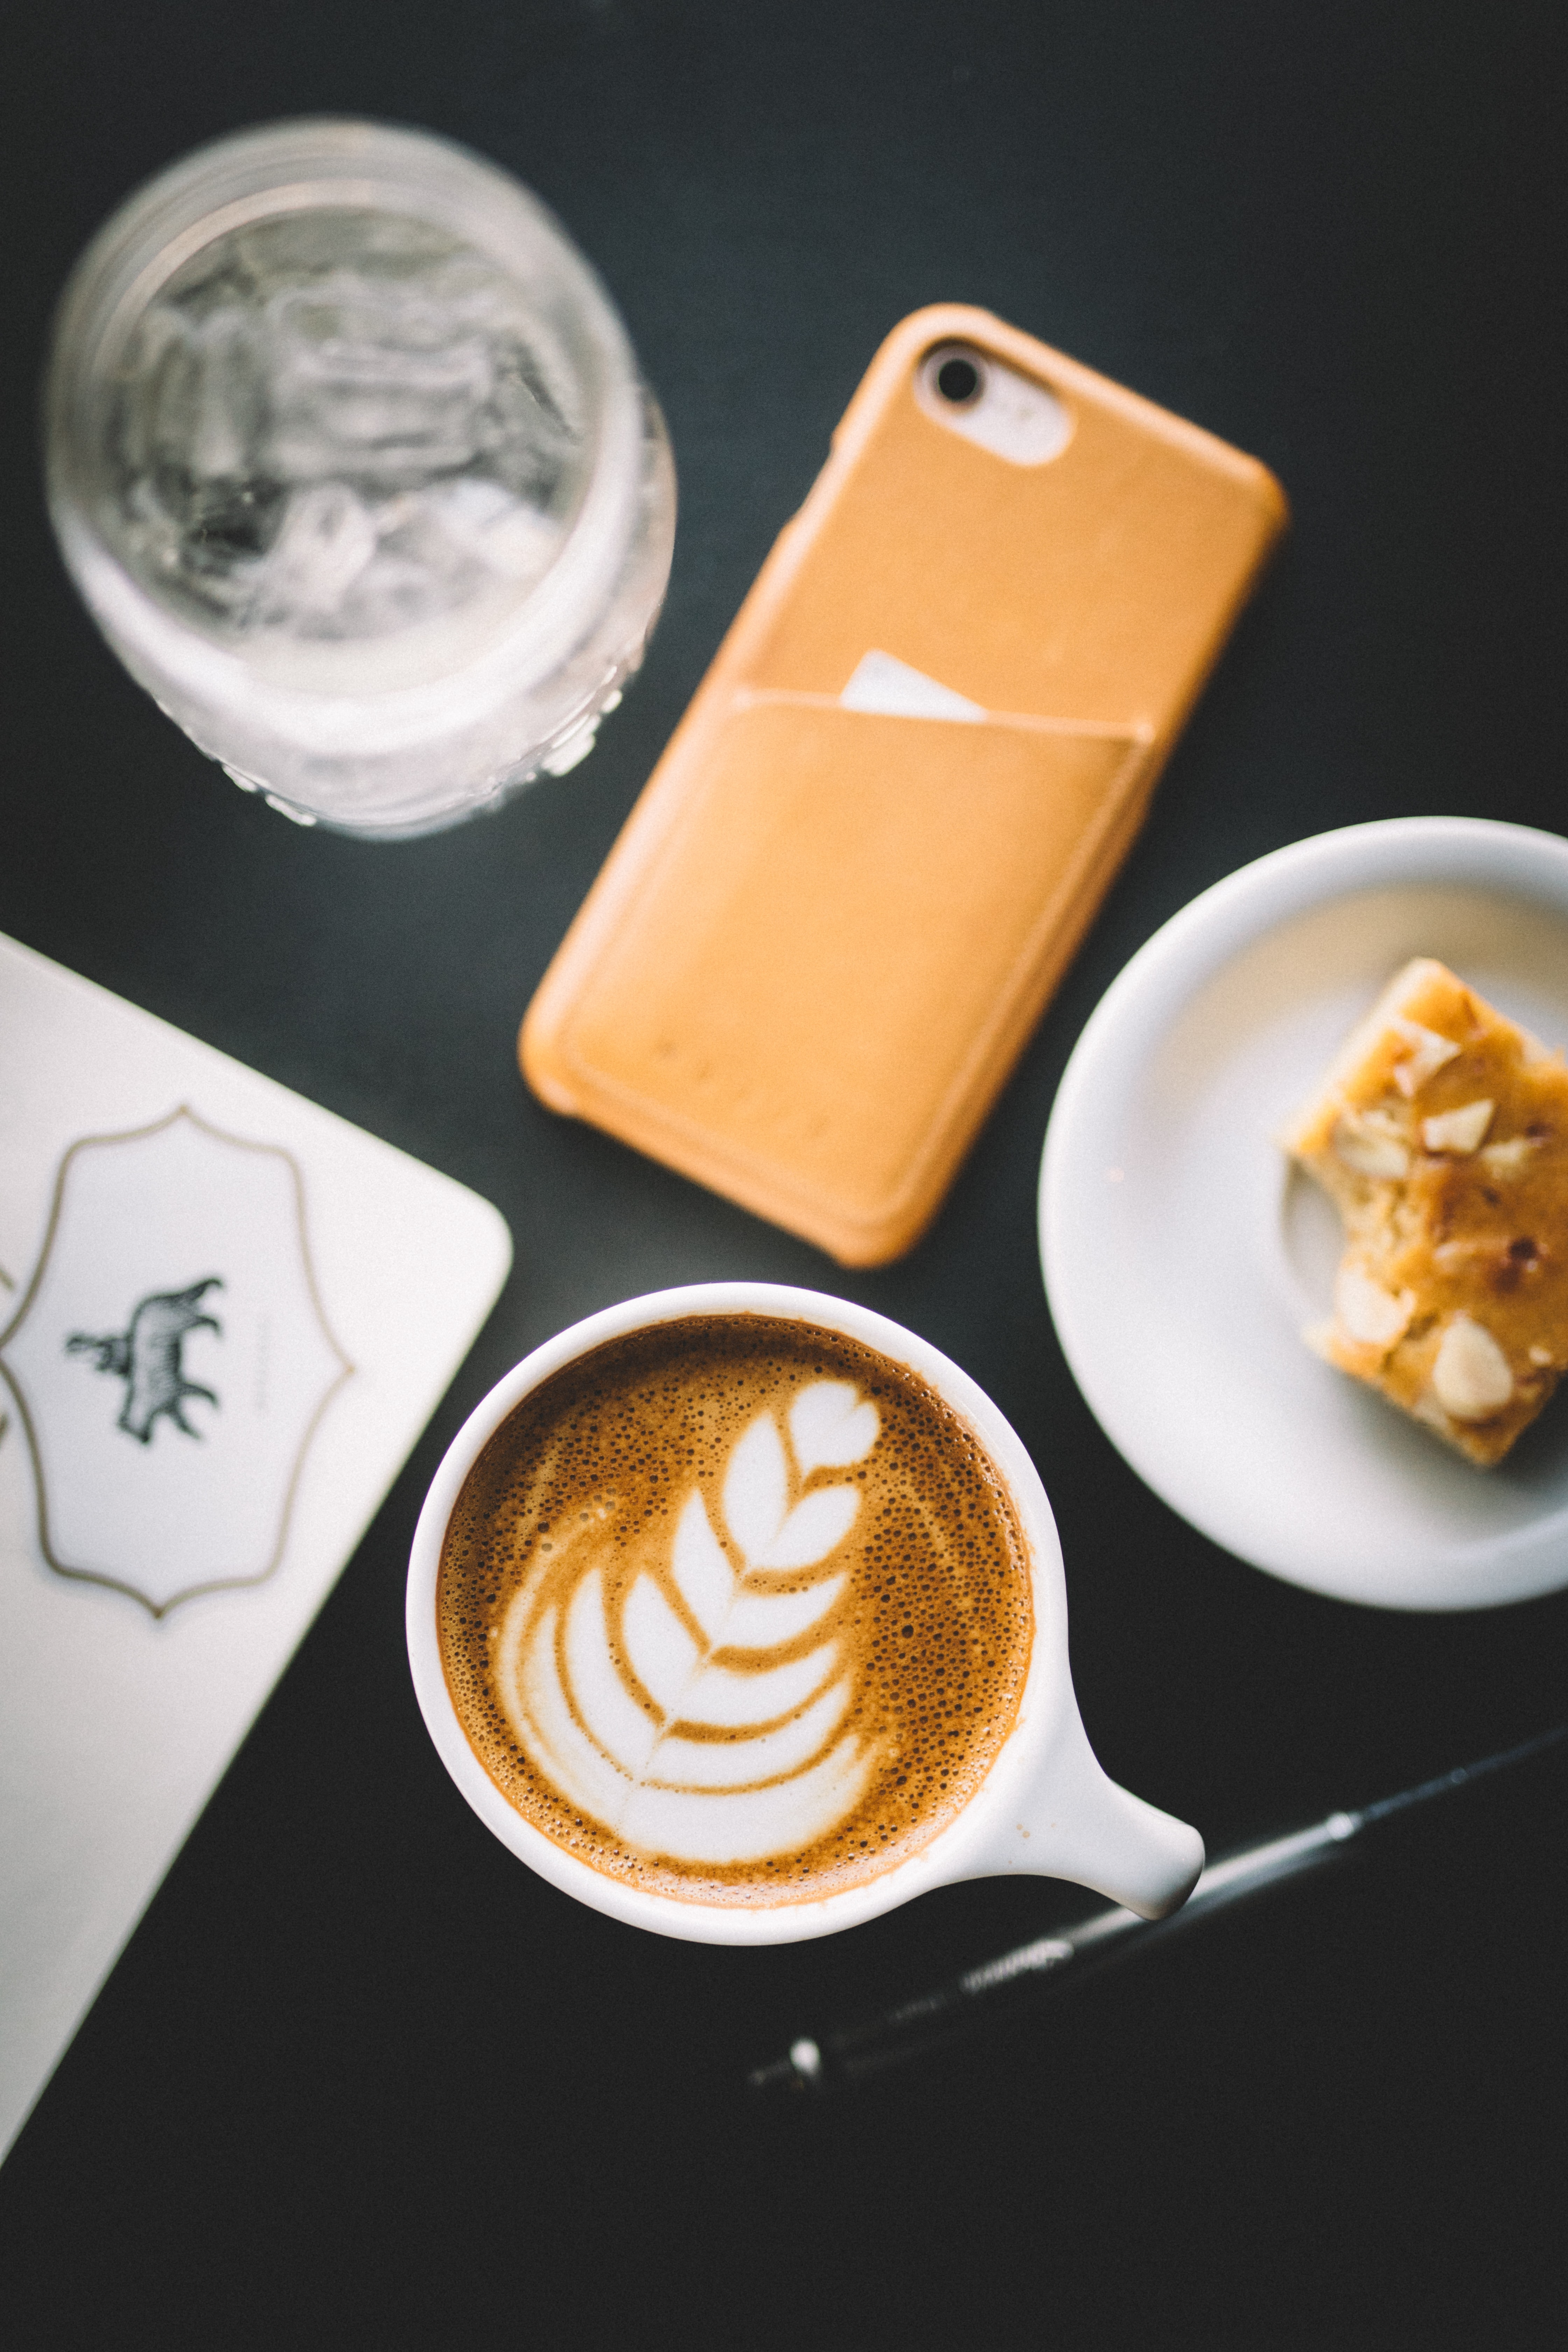 An overhead shot of coffee with latte art on it next to a piece of cake and an iPhone